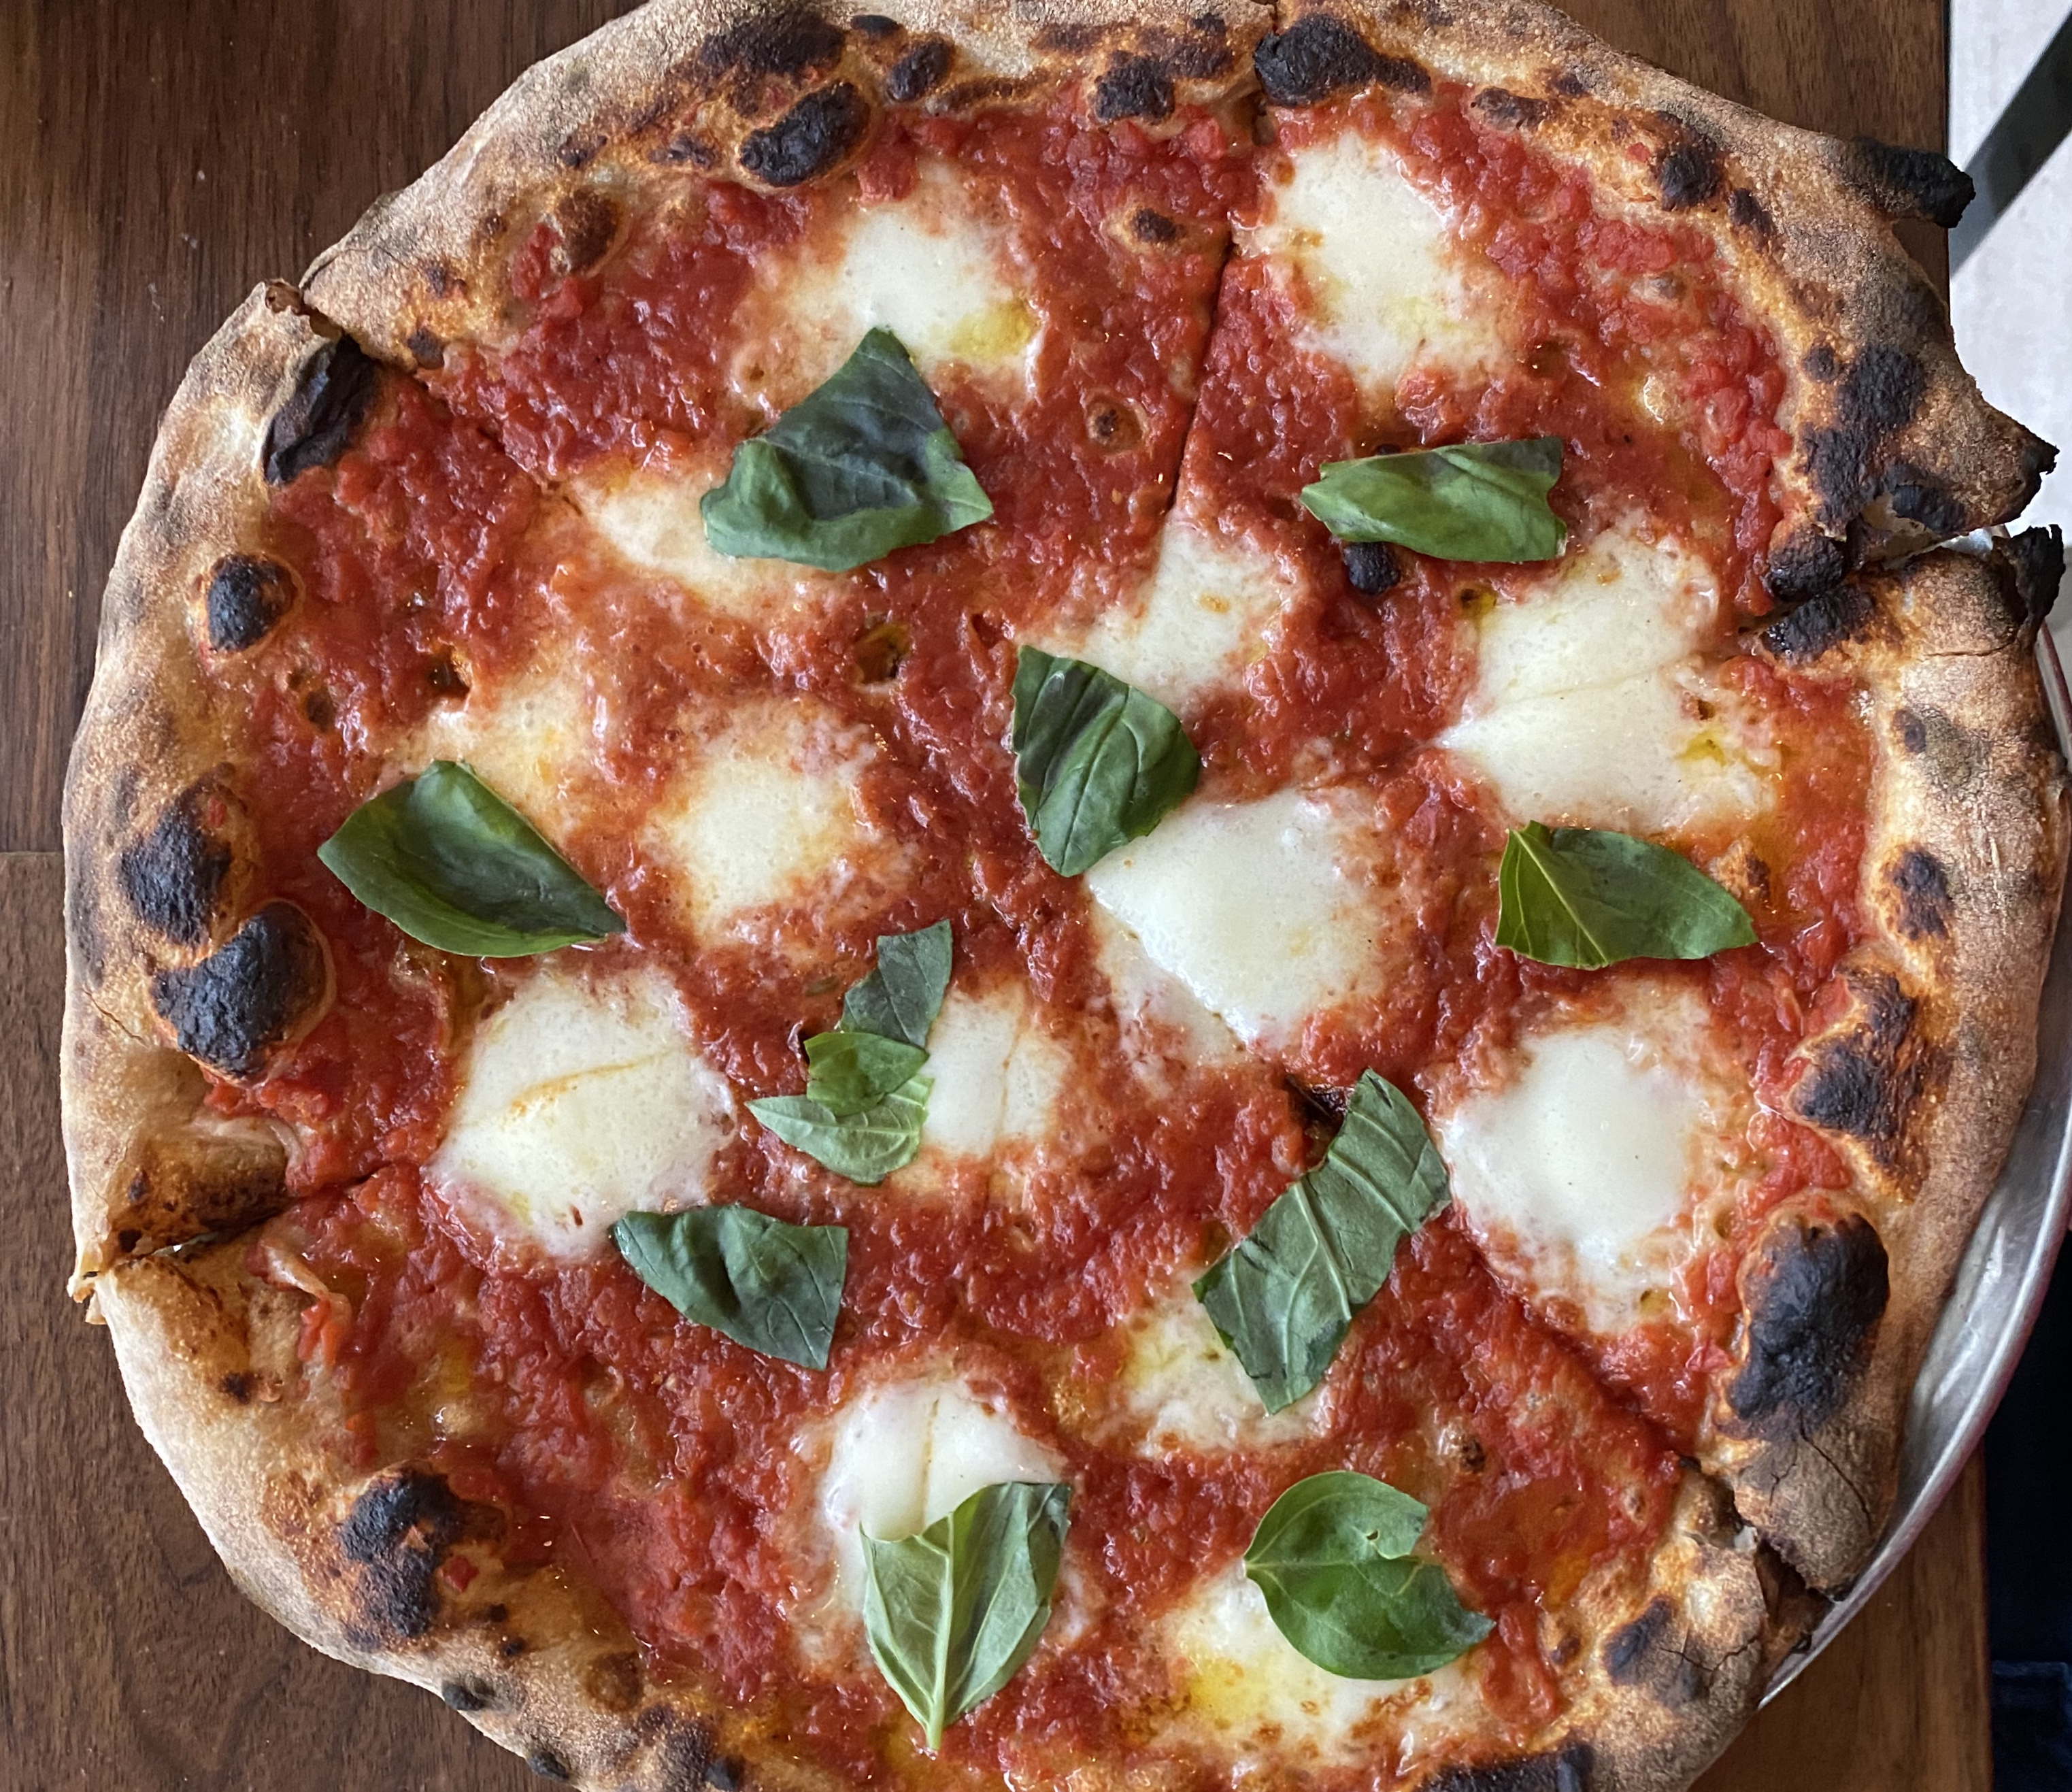 The margherita pizza at Leo